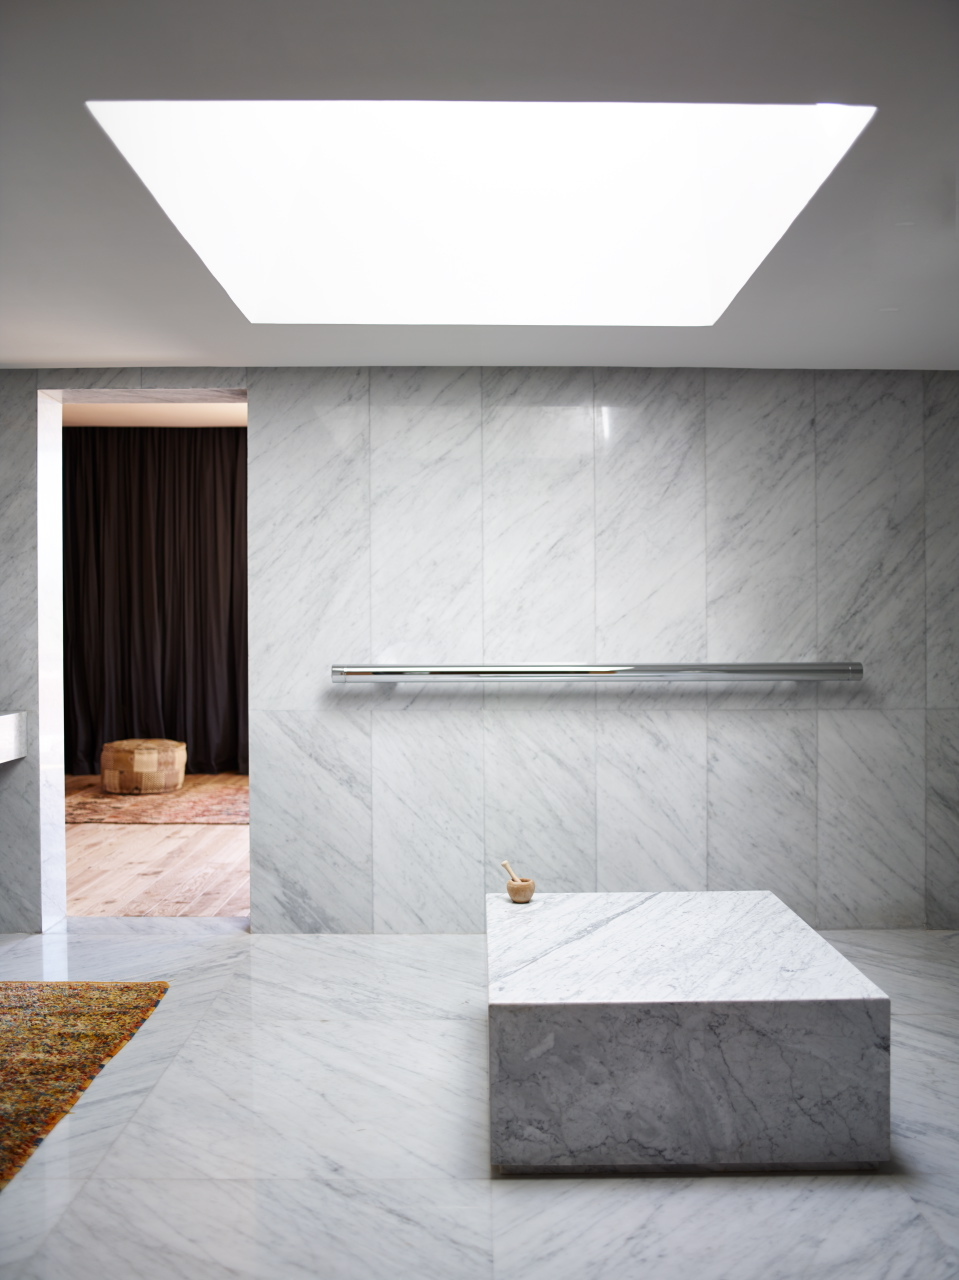 The slick marble bathroom of 'Villa E' is a contrast to it's rough brick exterior.